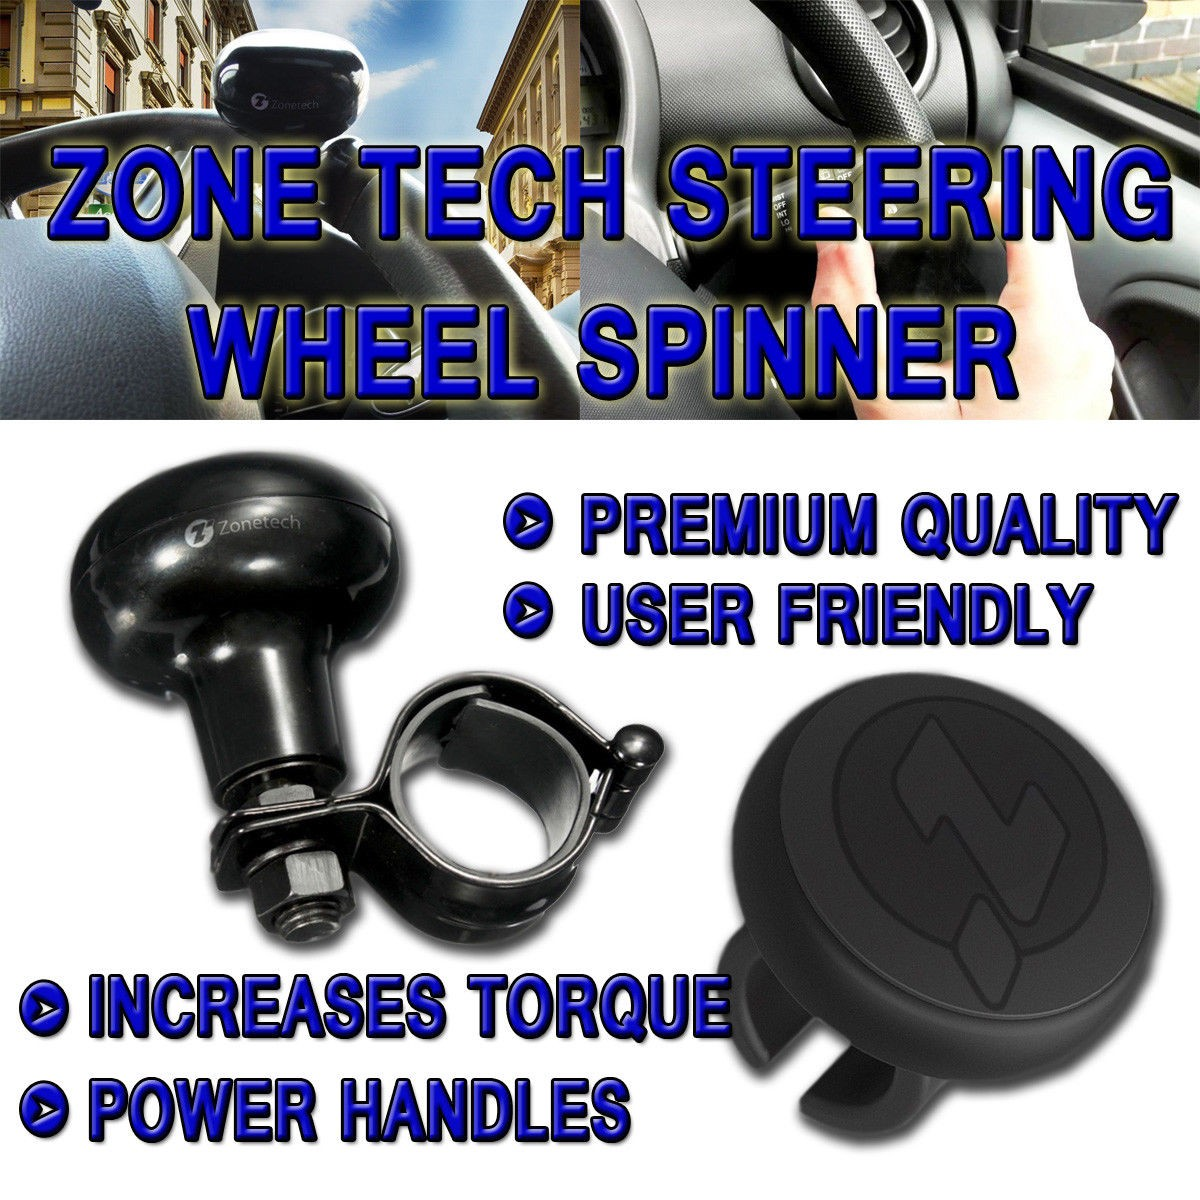 Zone Tech Suicide Classic Black Premium Quality Steering Wheel Spinner with Power Handles Universal Fit Vehicle Steering Wheel Spinner Knob